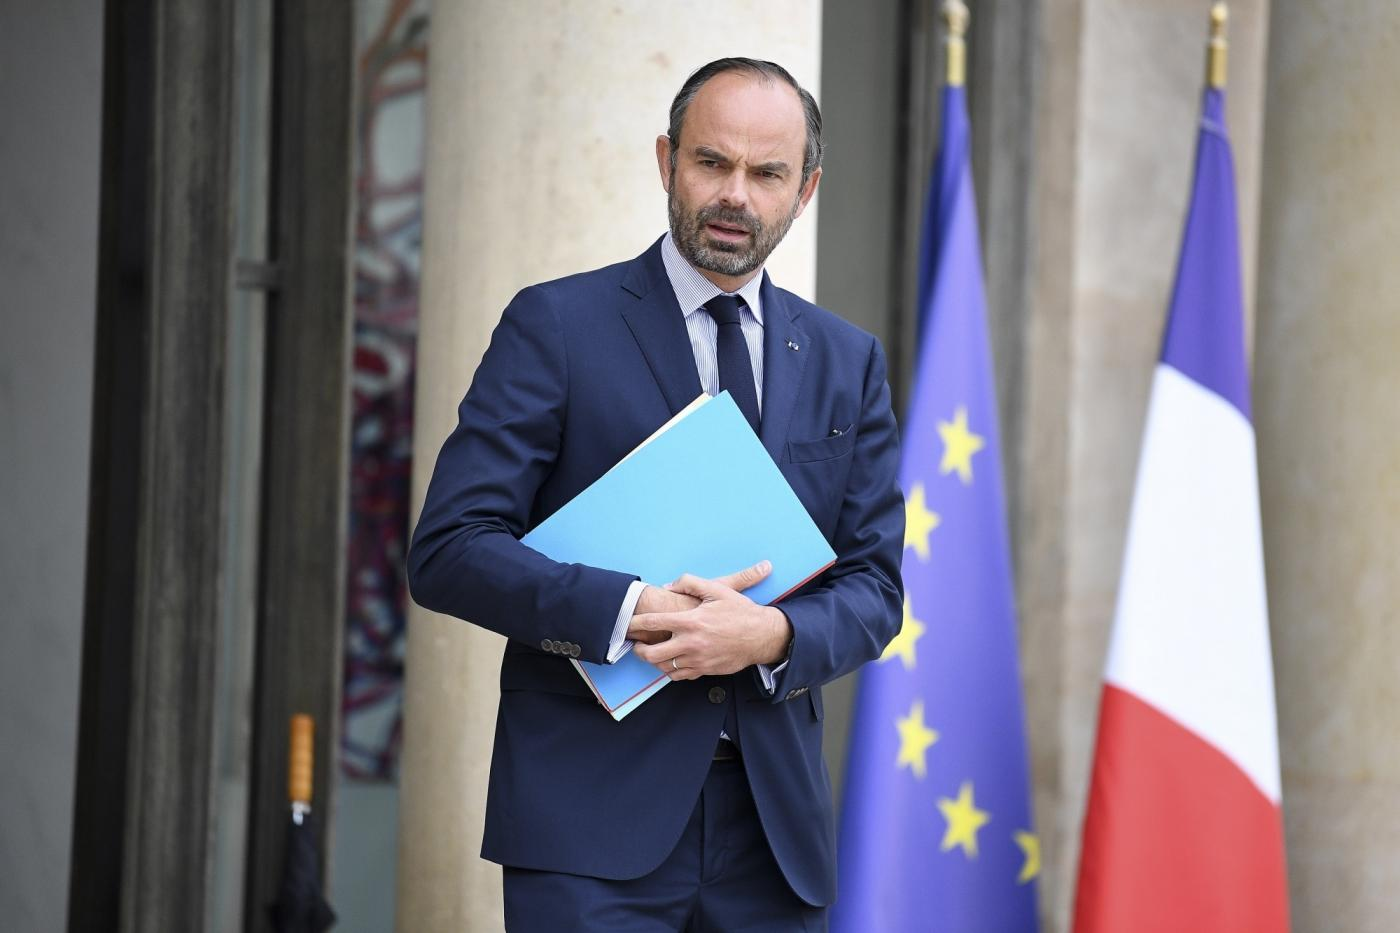 PARIS, Oct. 17, 2018 (Xinhua) -- French Prime Minister Edouard Philippe leaves the Elysee Palace after the cabinet meeting in Paris, France on Oct. 17, 2018. French President Emmanuel Macron on Tuesday named Christophe Castaner, one of his main backers, to supervise interior affairs and replace Gerard Collomb, in his latest cabinet reshuffle. (Xinhua/Jack Chan/IANS) by .